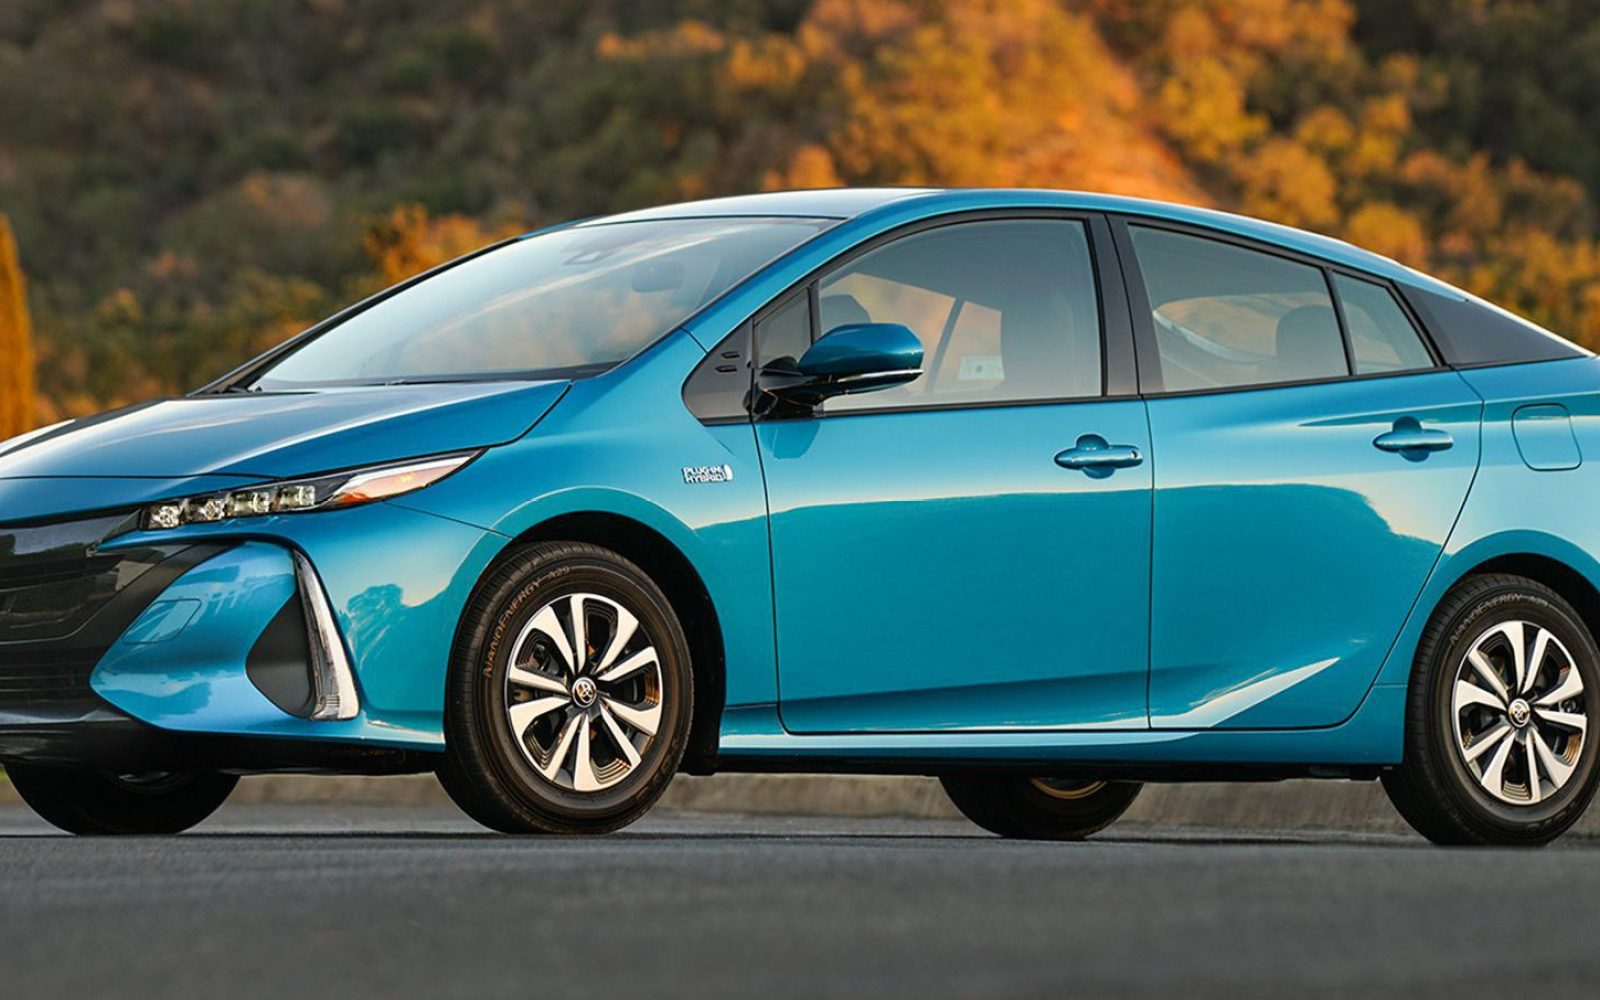 Toyota claims it achieved an electric car battery 'breakthrough', says 'up to 15 percent greater range'